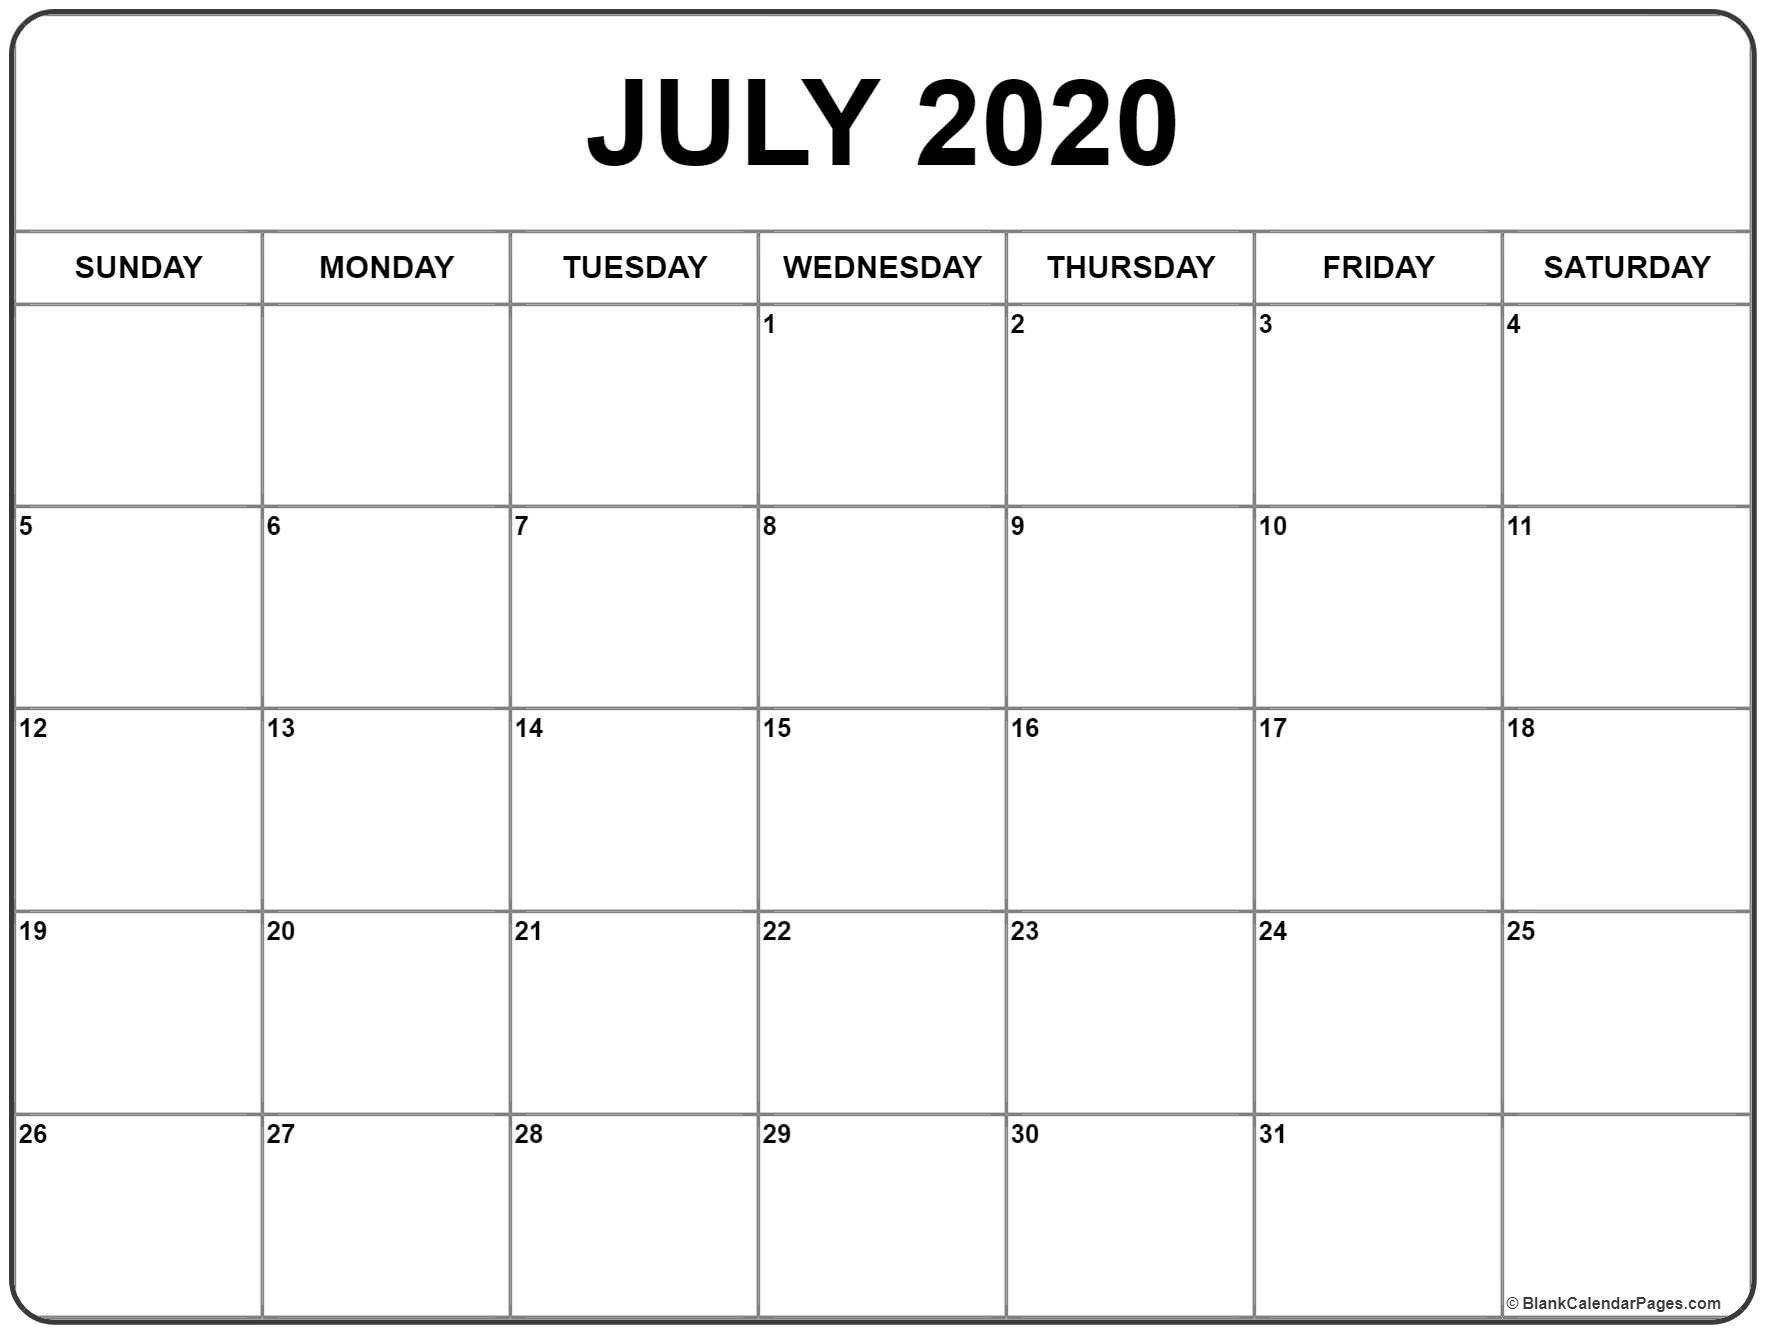 July 2020 Calendar | Printable Blank Calendar, January-Blank Monthly Calendar Printable July 2020